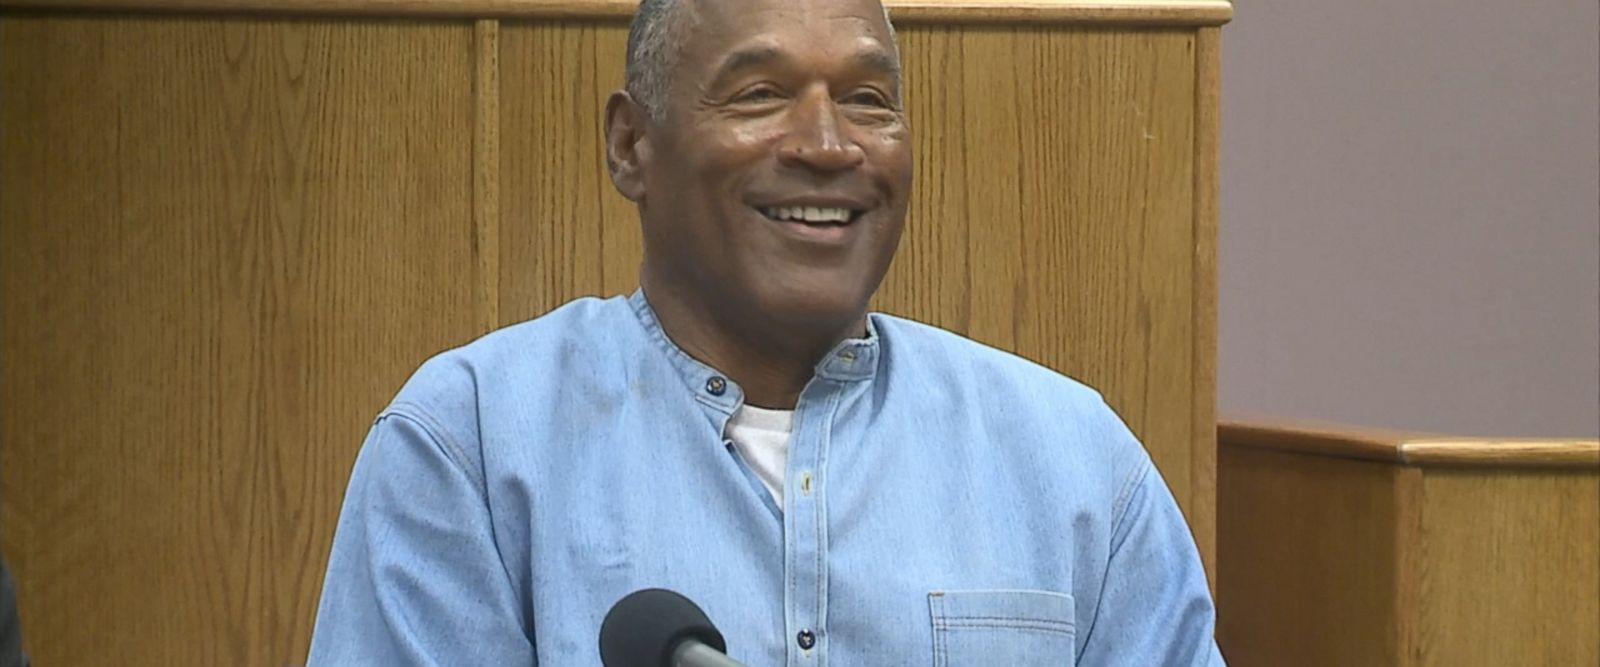 """I'm sorry about that,"" chairman Connie S. Bisbee joked after incorrectly calling OJ Simpson 90 years old instead of 70 years old. ""You look great! How about we take two decades off and call you 70."""